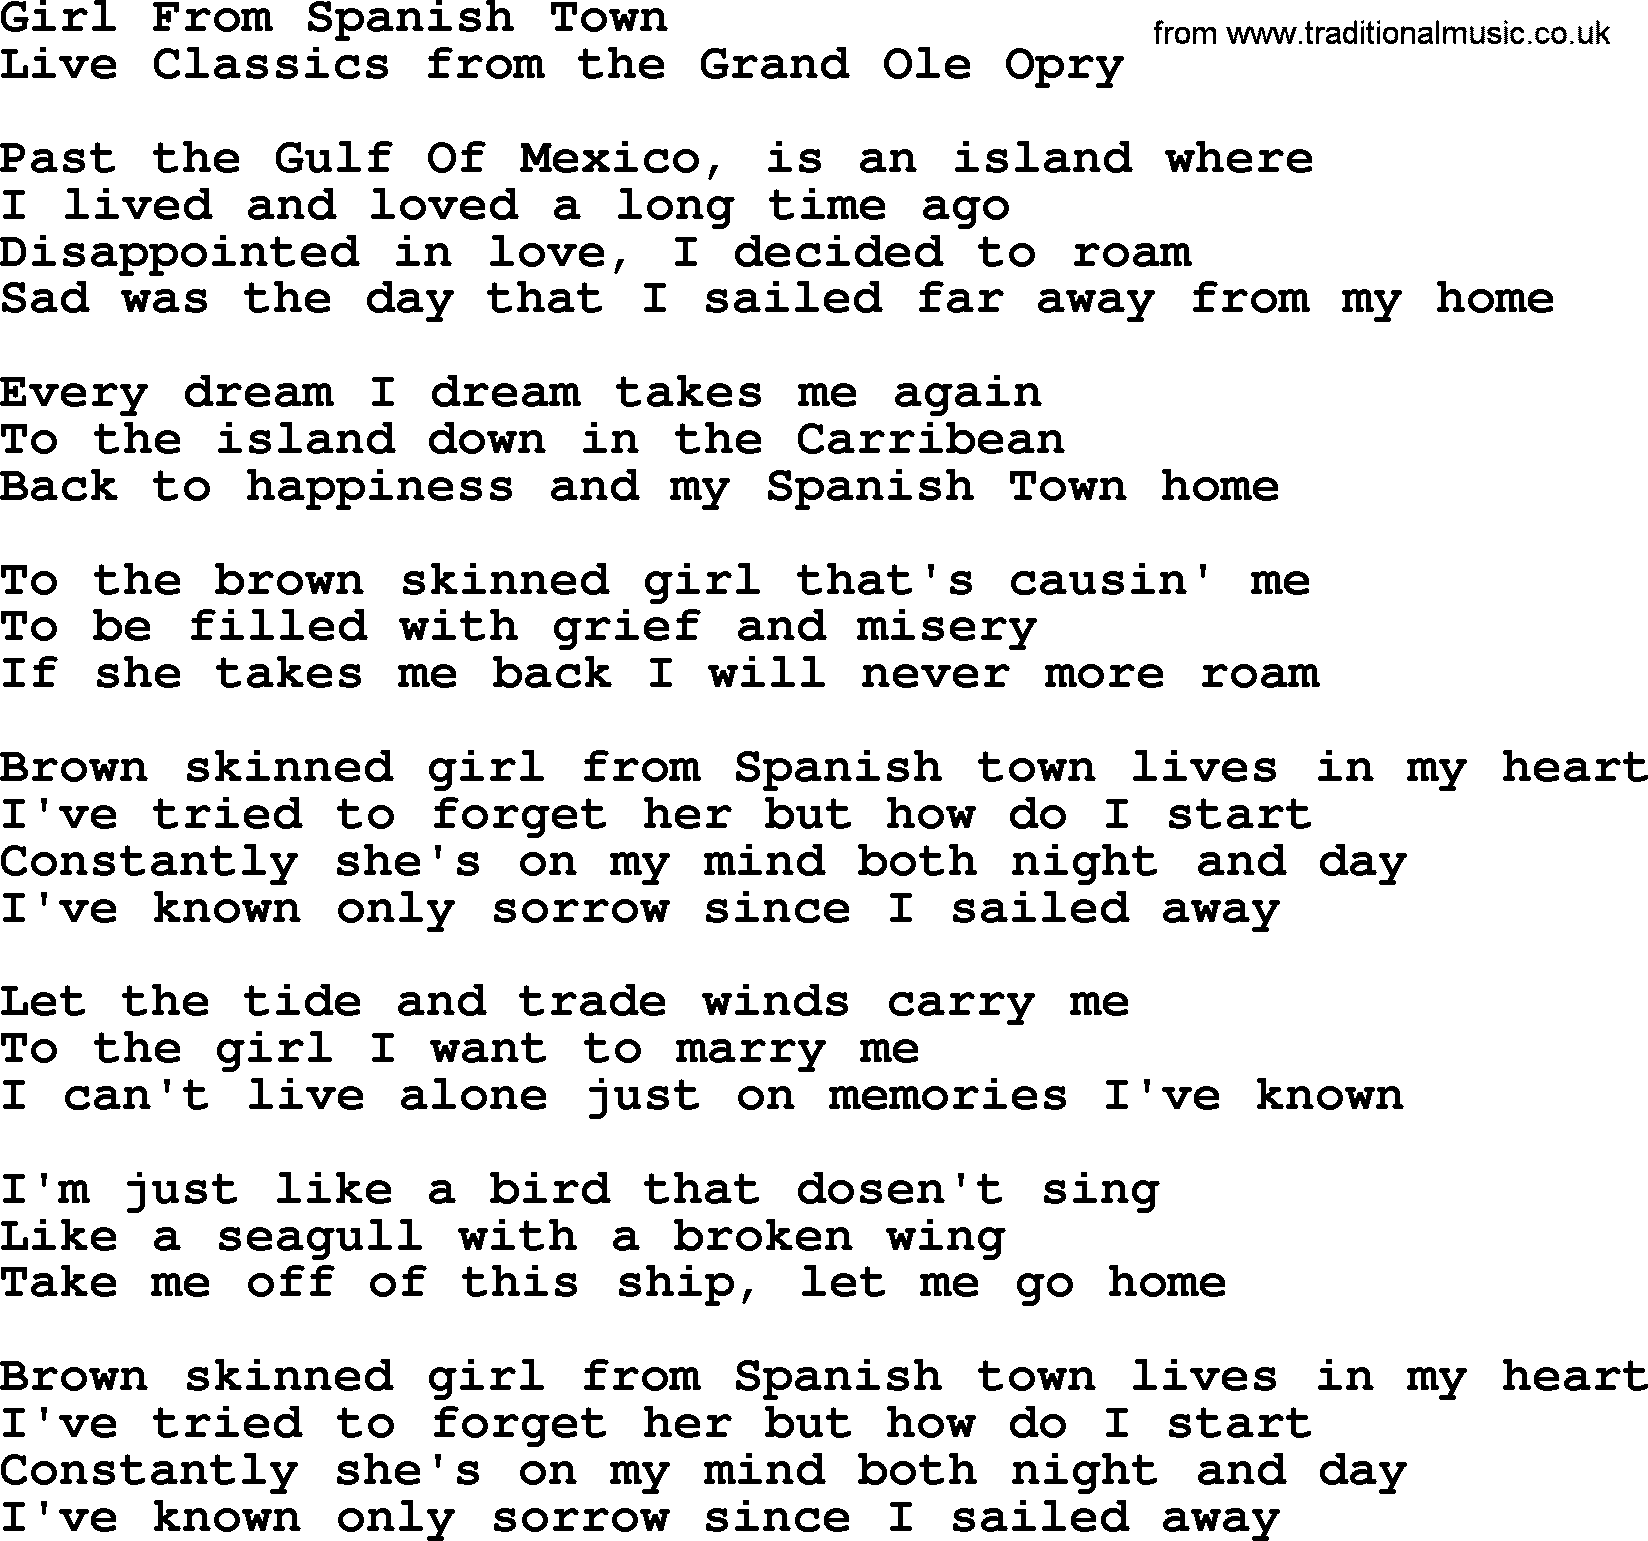 Girl From Spanish Town, by Marty Robbins - lyrics